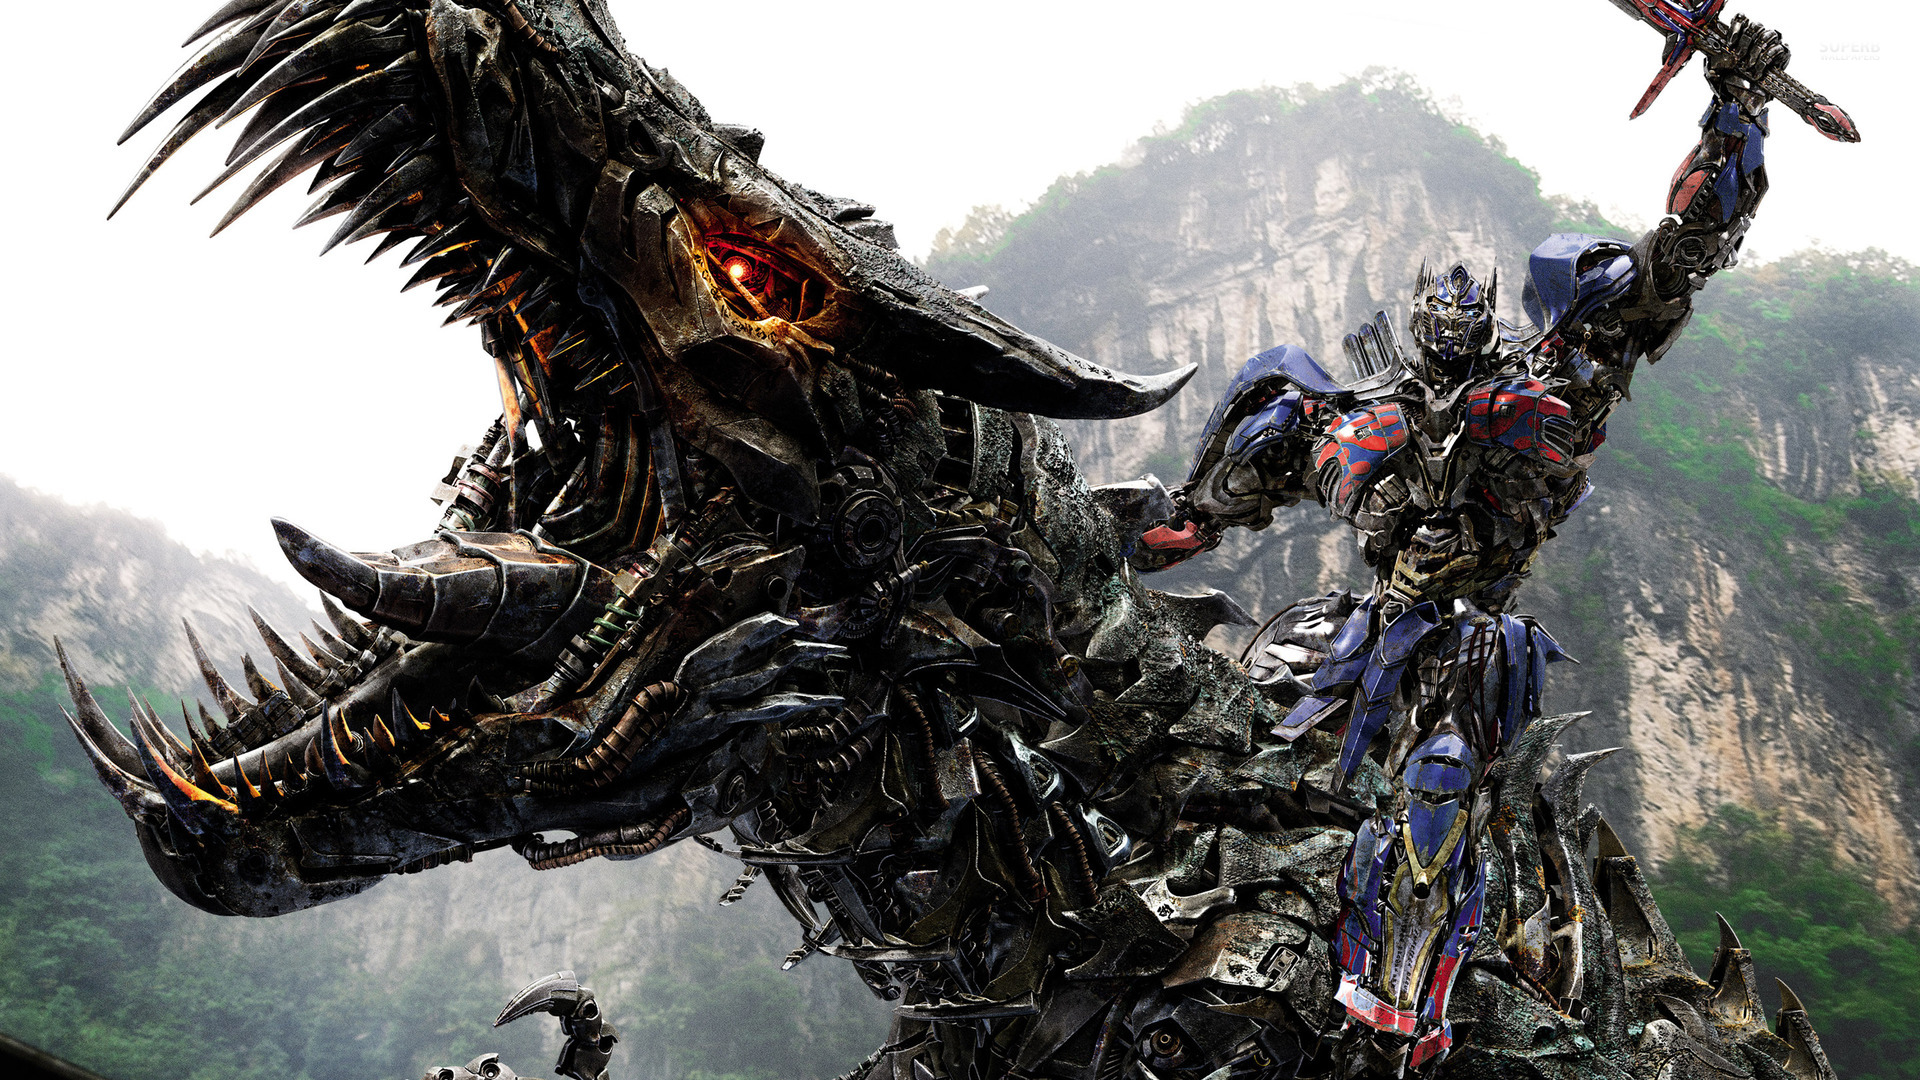 45 hd transformer wallpapers backgrounds for free download - Free transformer wallpaper ...